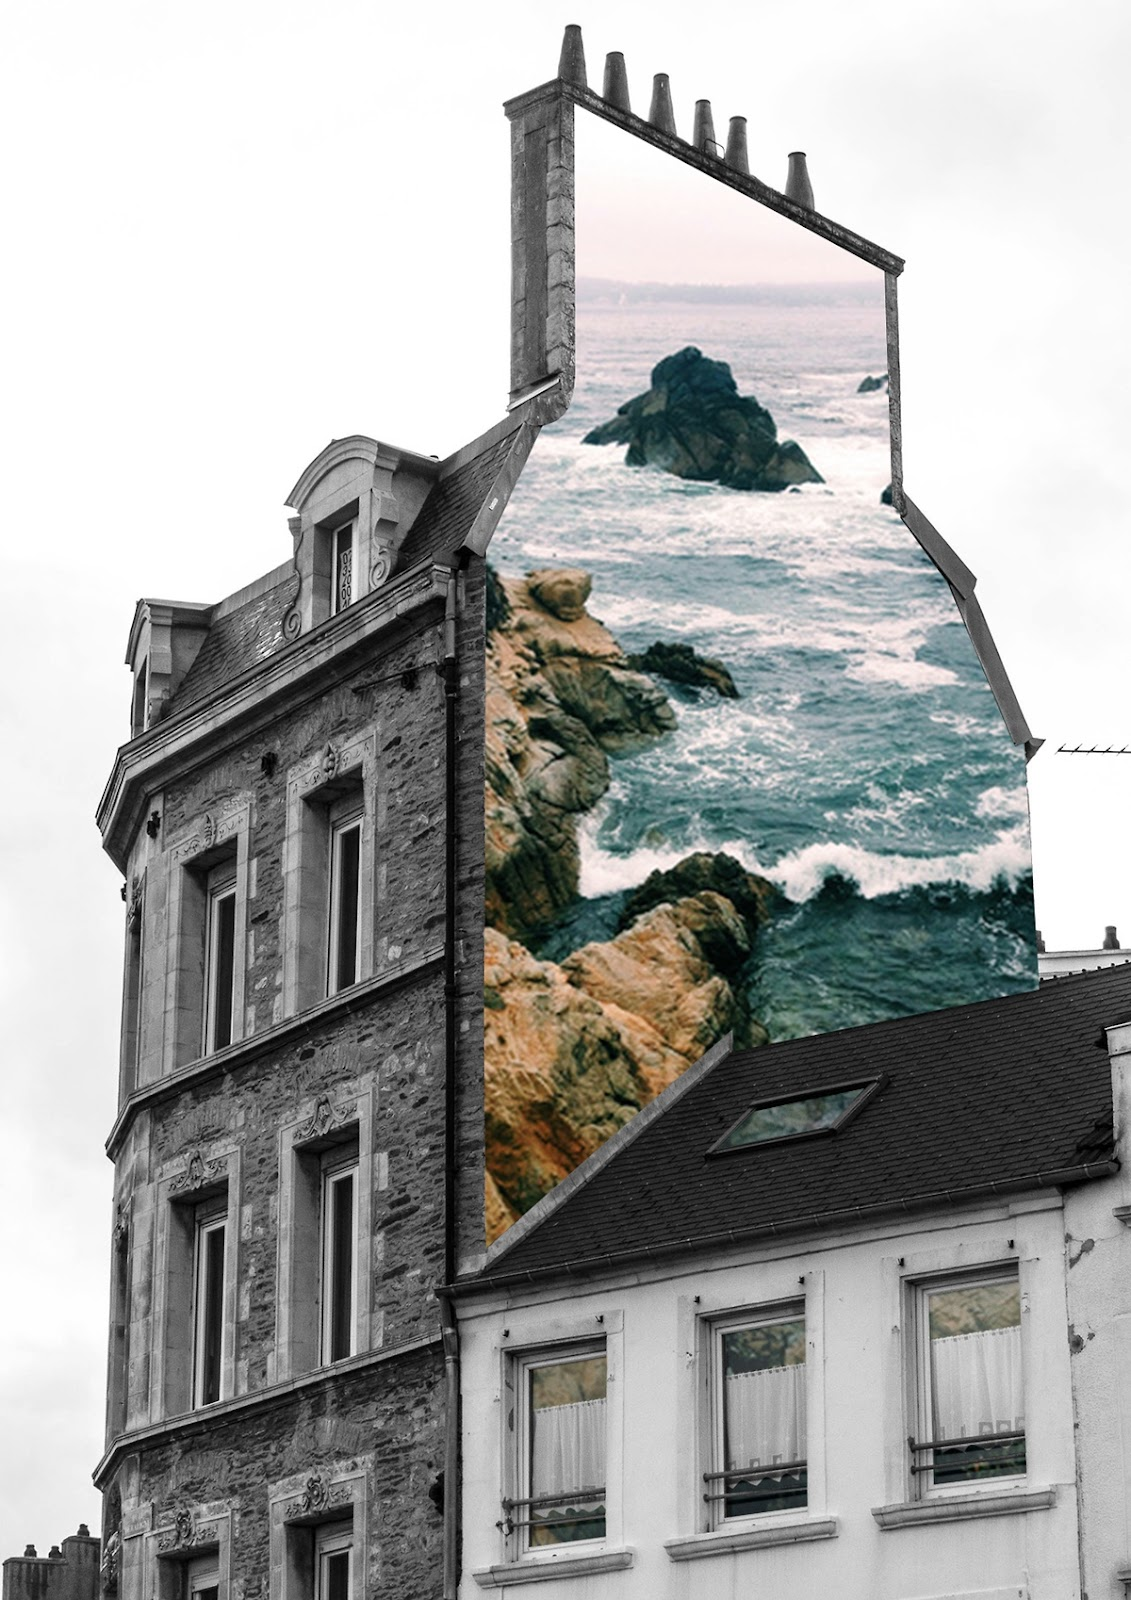 15-House-Merve-Özaslan-Natural-Act-Photographic-Collage-Humans-with-Nature-www-designstack-co